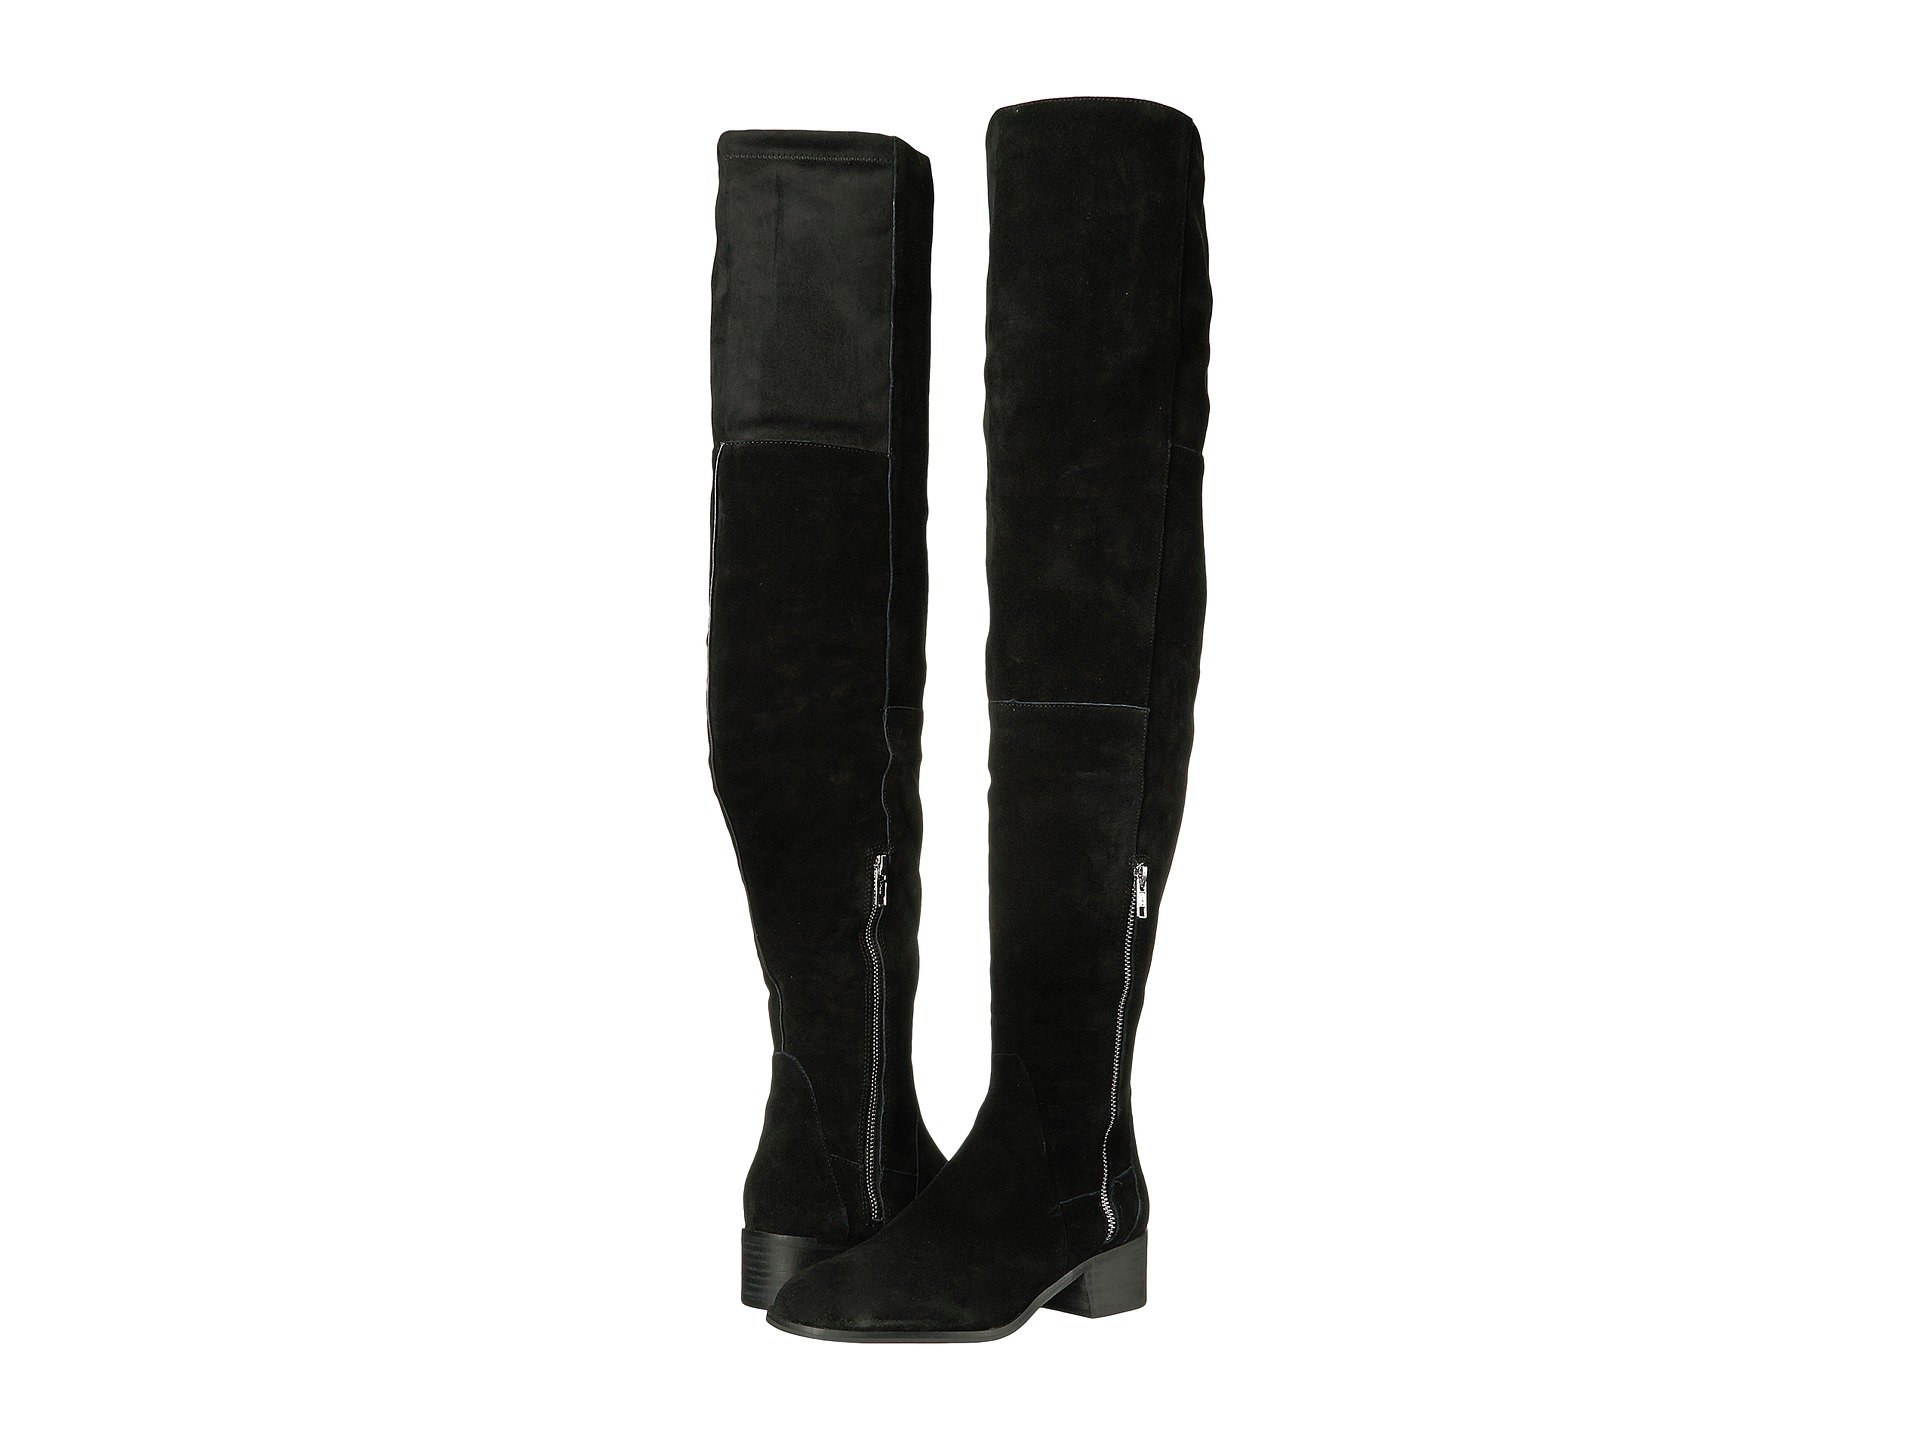 EVERLY TALL BOOT